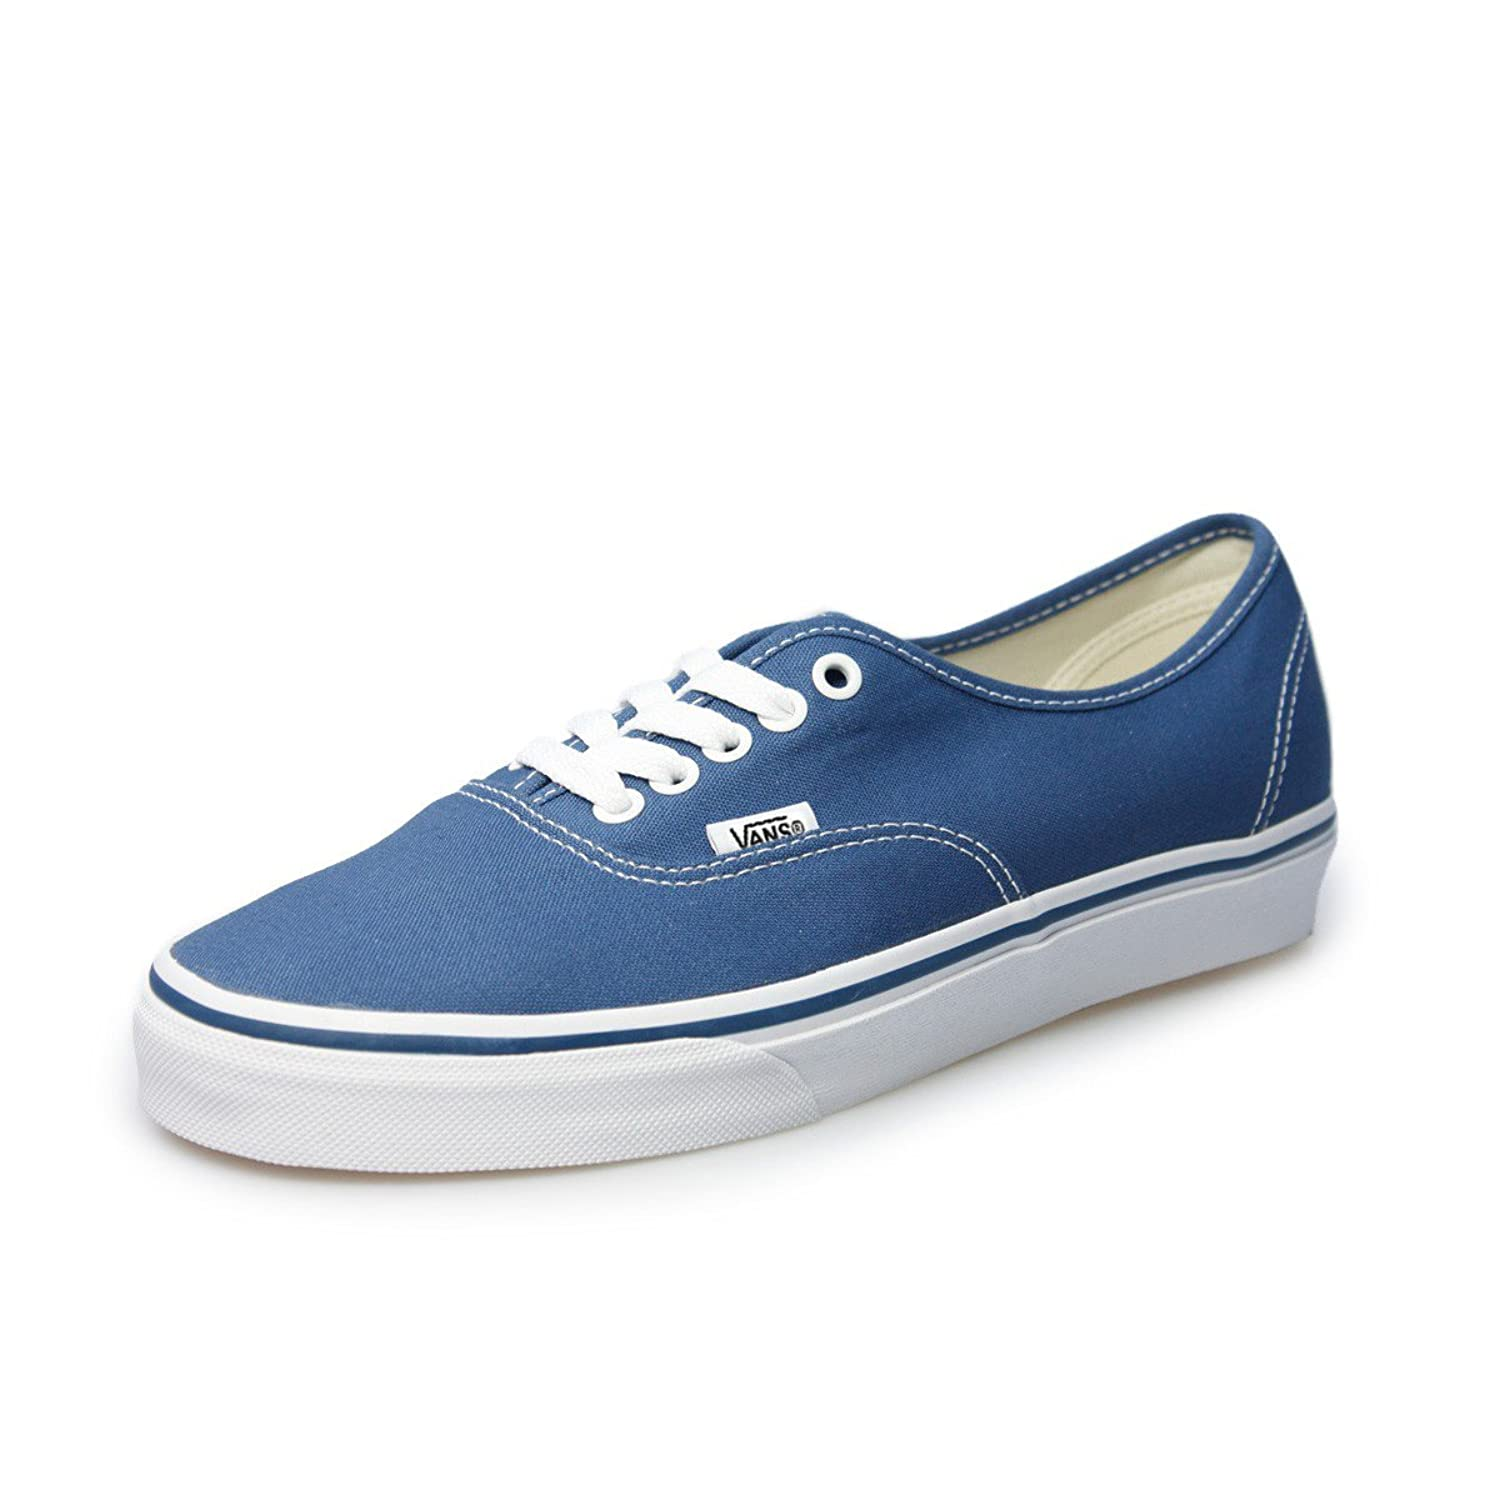 Vans Authentic Unisex Navy White Canvas Vulcanised Skate Trainers Shoes VEE3NVY-UK 5 vik max factory outlet white figure skate shoes two size left ice skate shoes cheap figure skate shoes